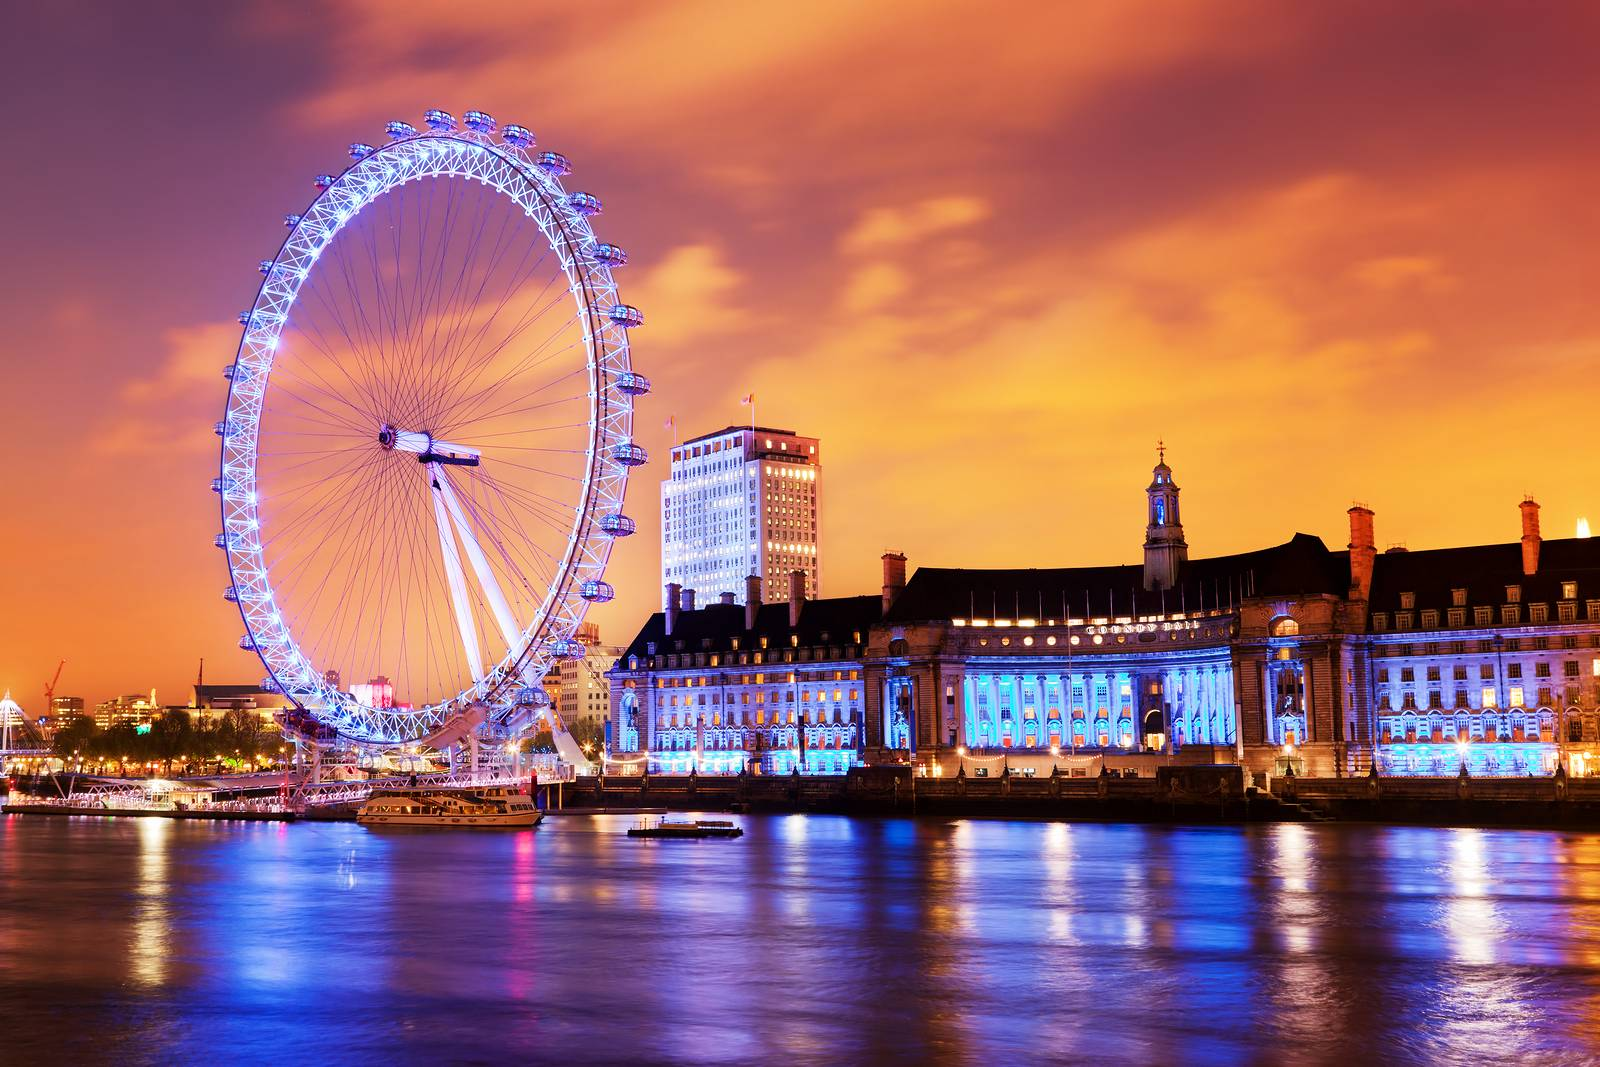 Bild des London Eyes